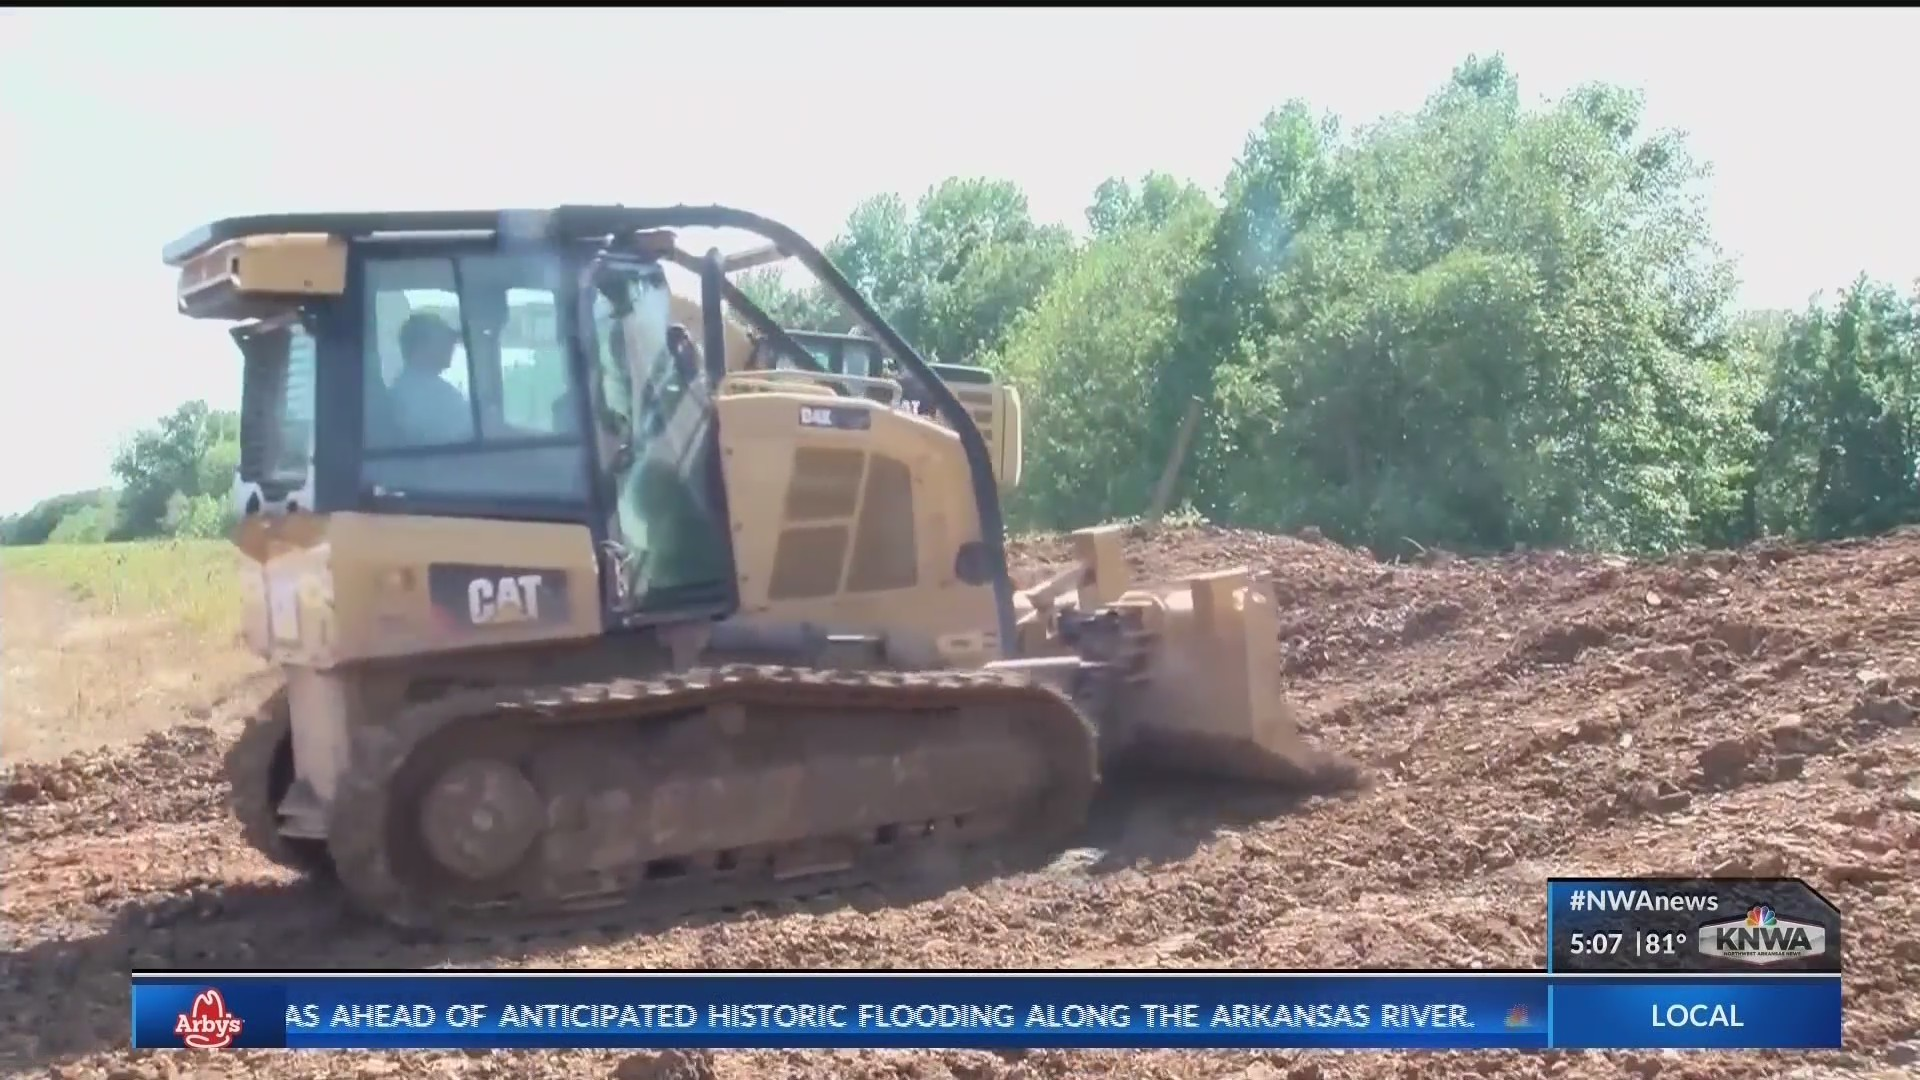 Farmers race to protect land, rice worth millions before predicted 'historic' flood (KNWA)